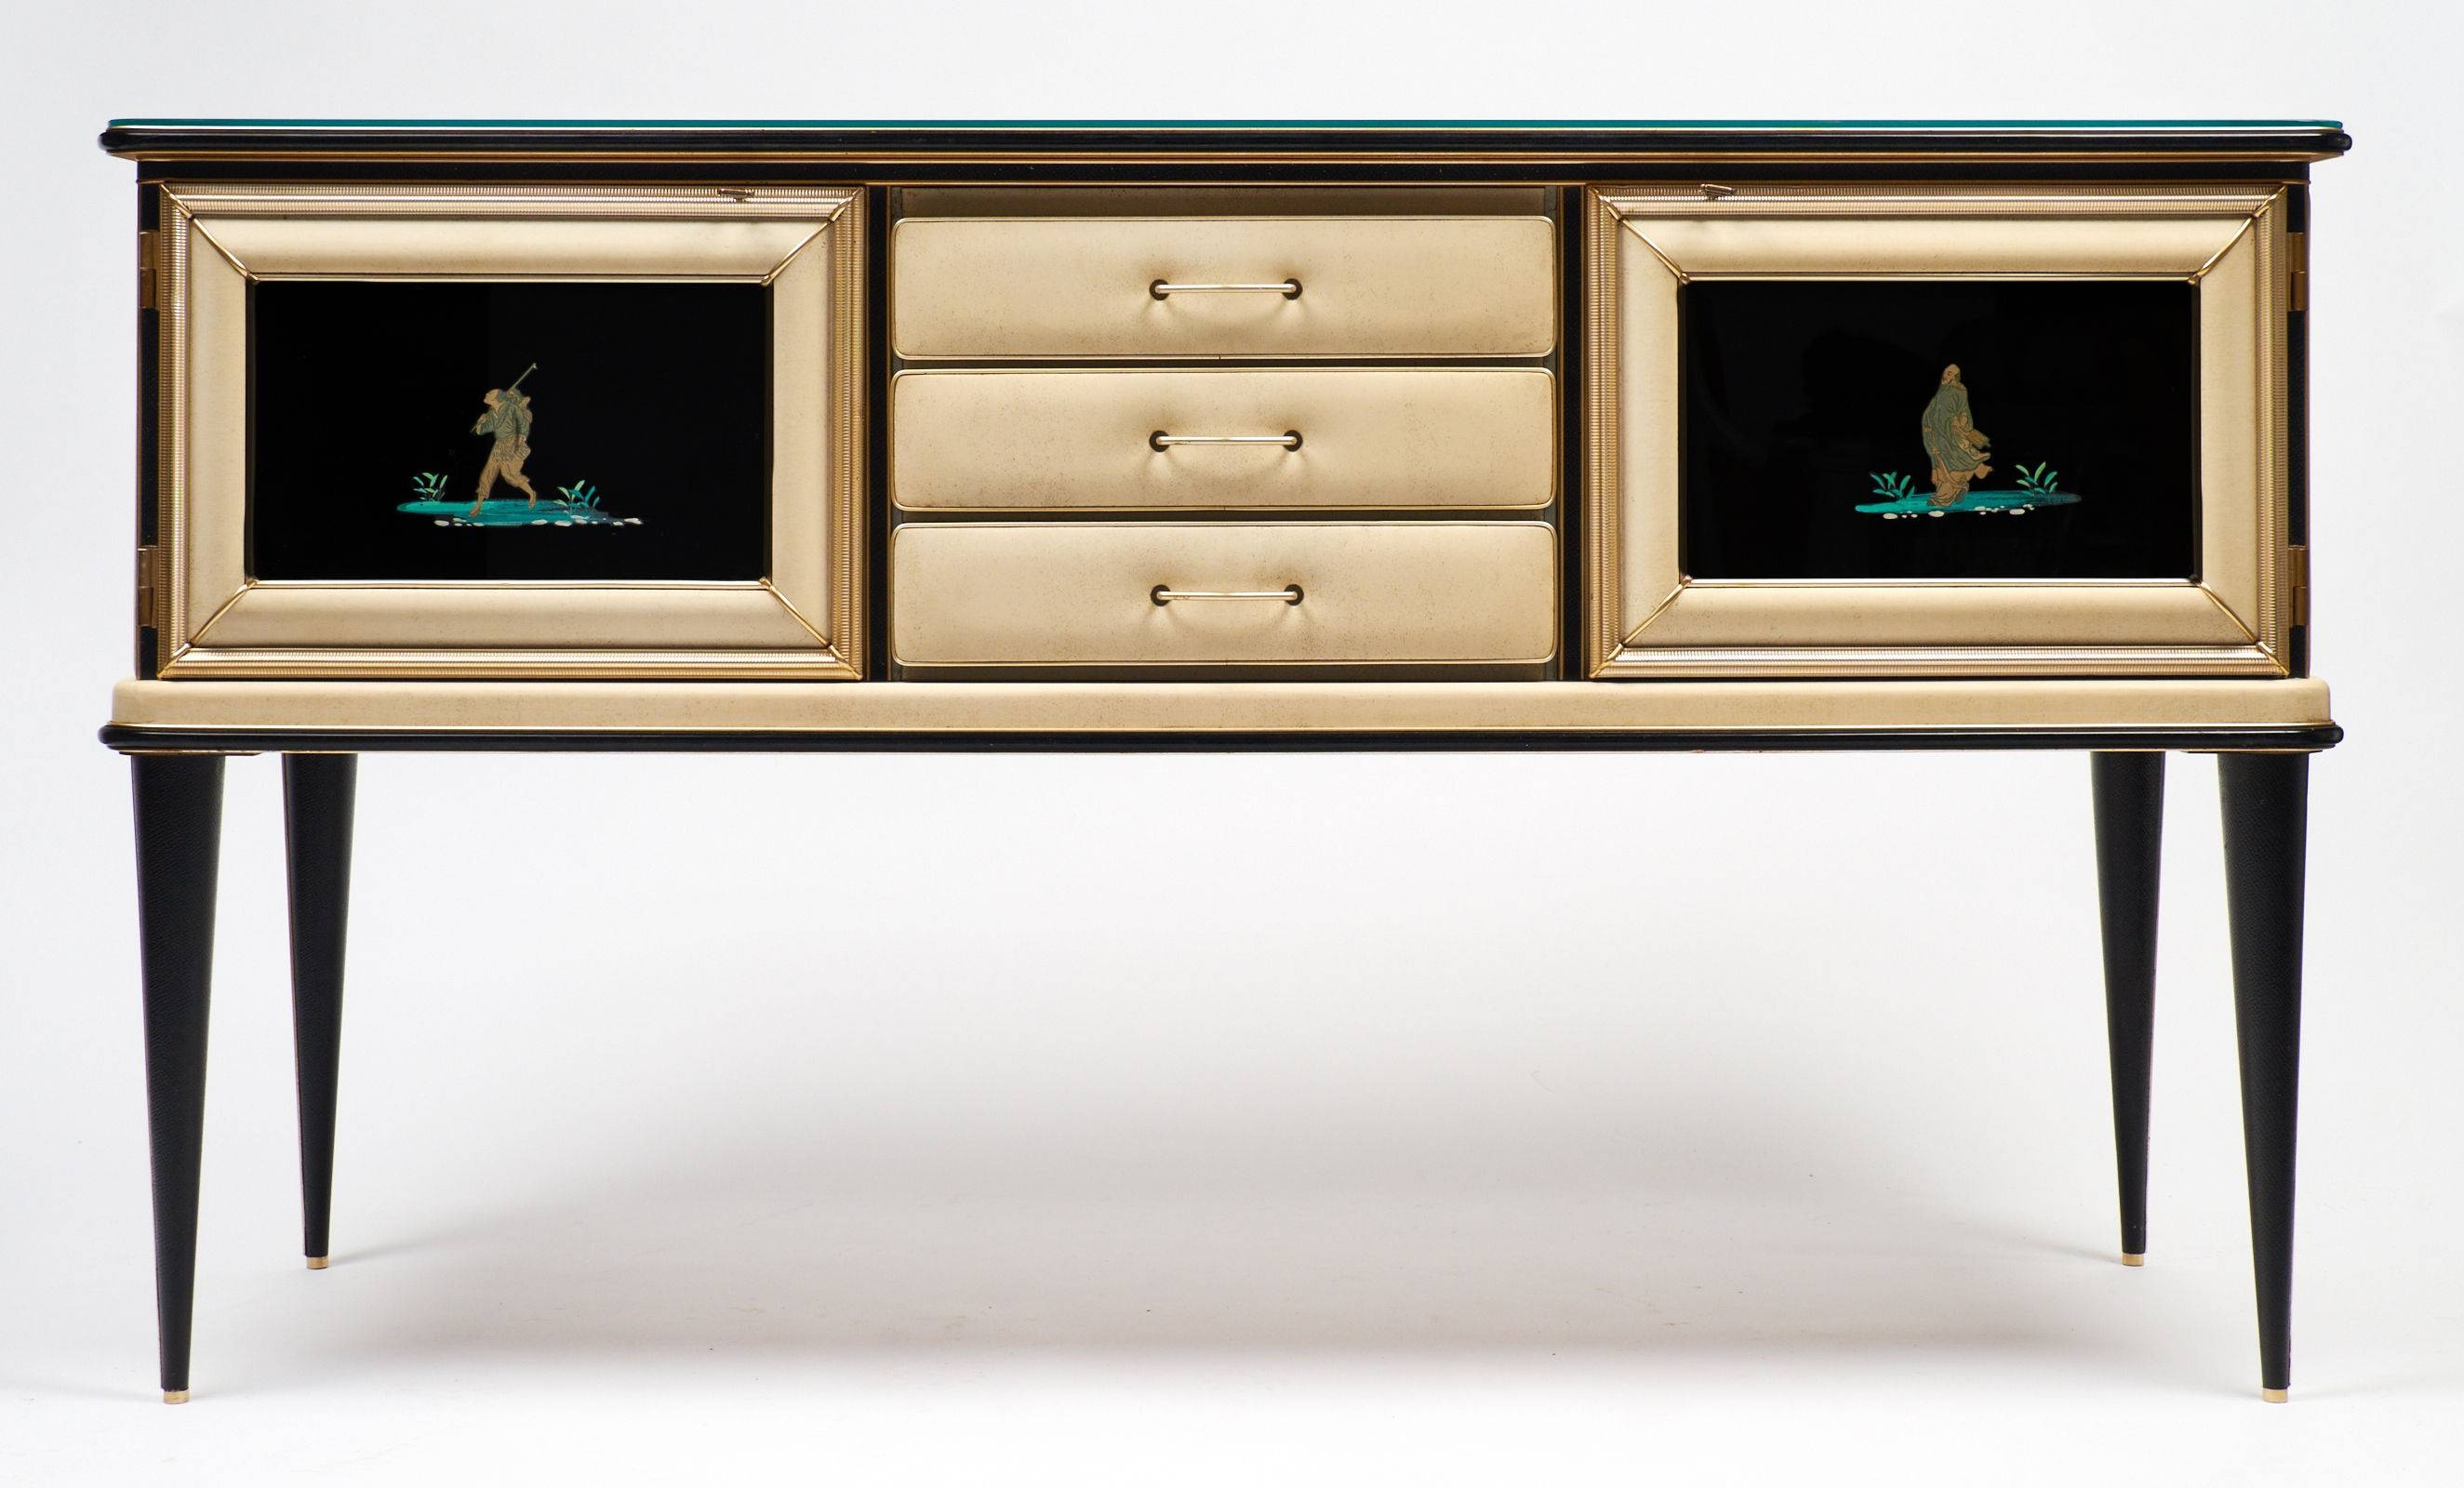 Vintage Umberto Mascagni Chinoiserie Sideboard - Jean Marc Fray within Chinoiserie Sideboards (Image 29 of 30)